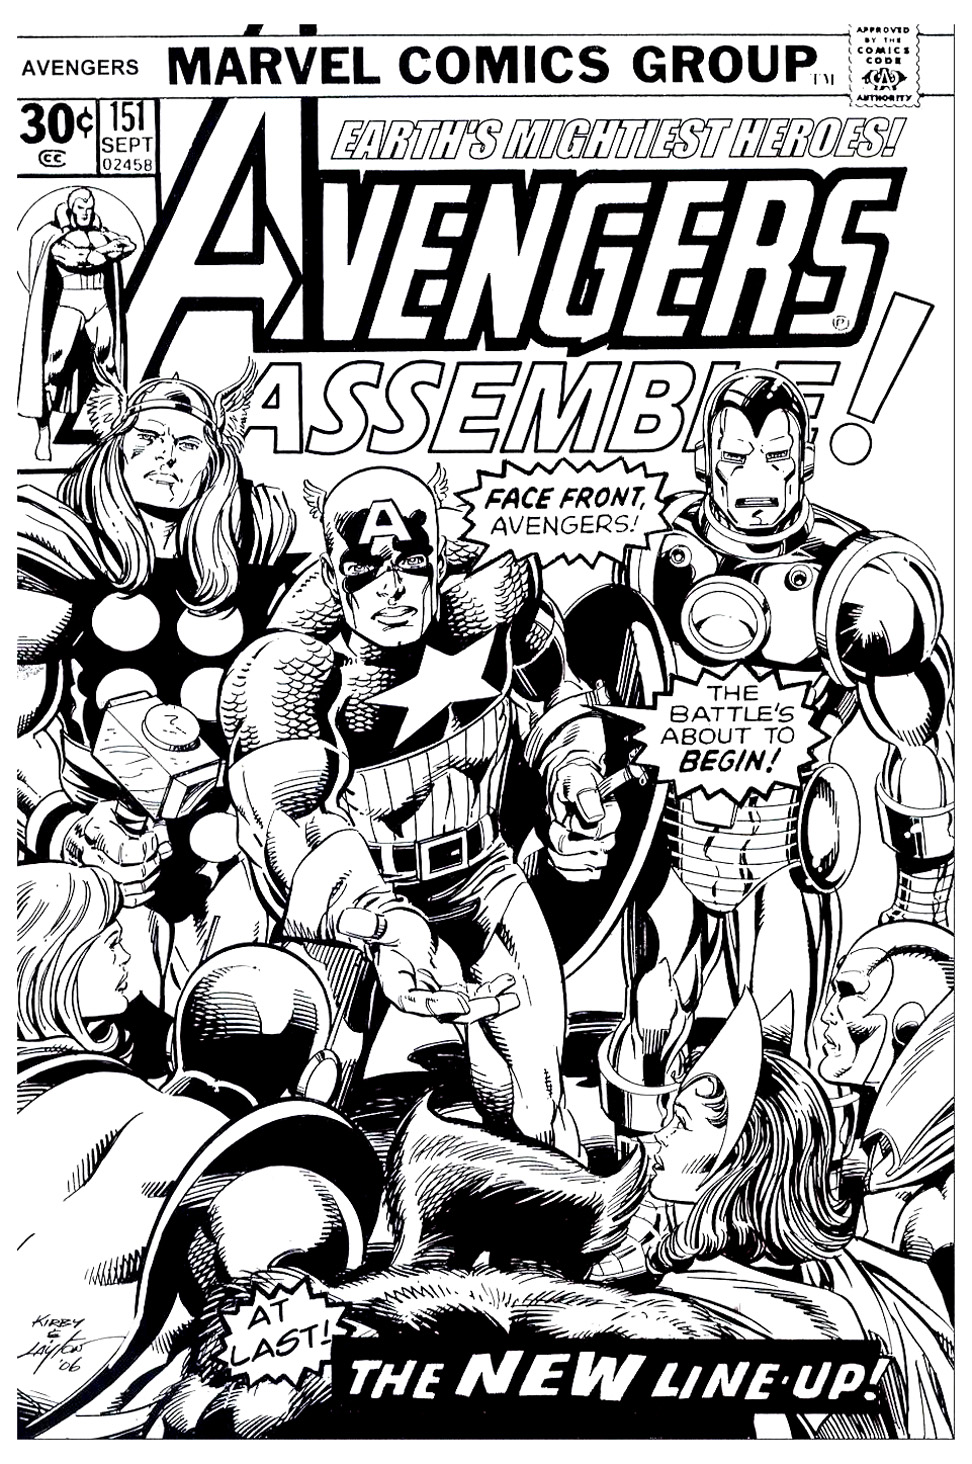 The super heroes Captain America, Iron man, Thor... from the Avengers comics book